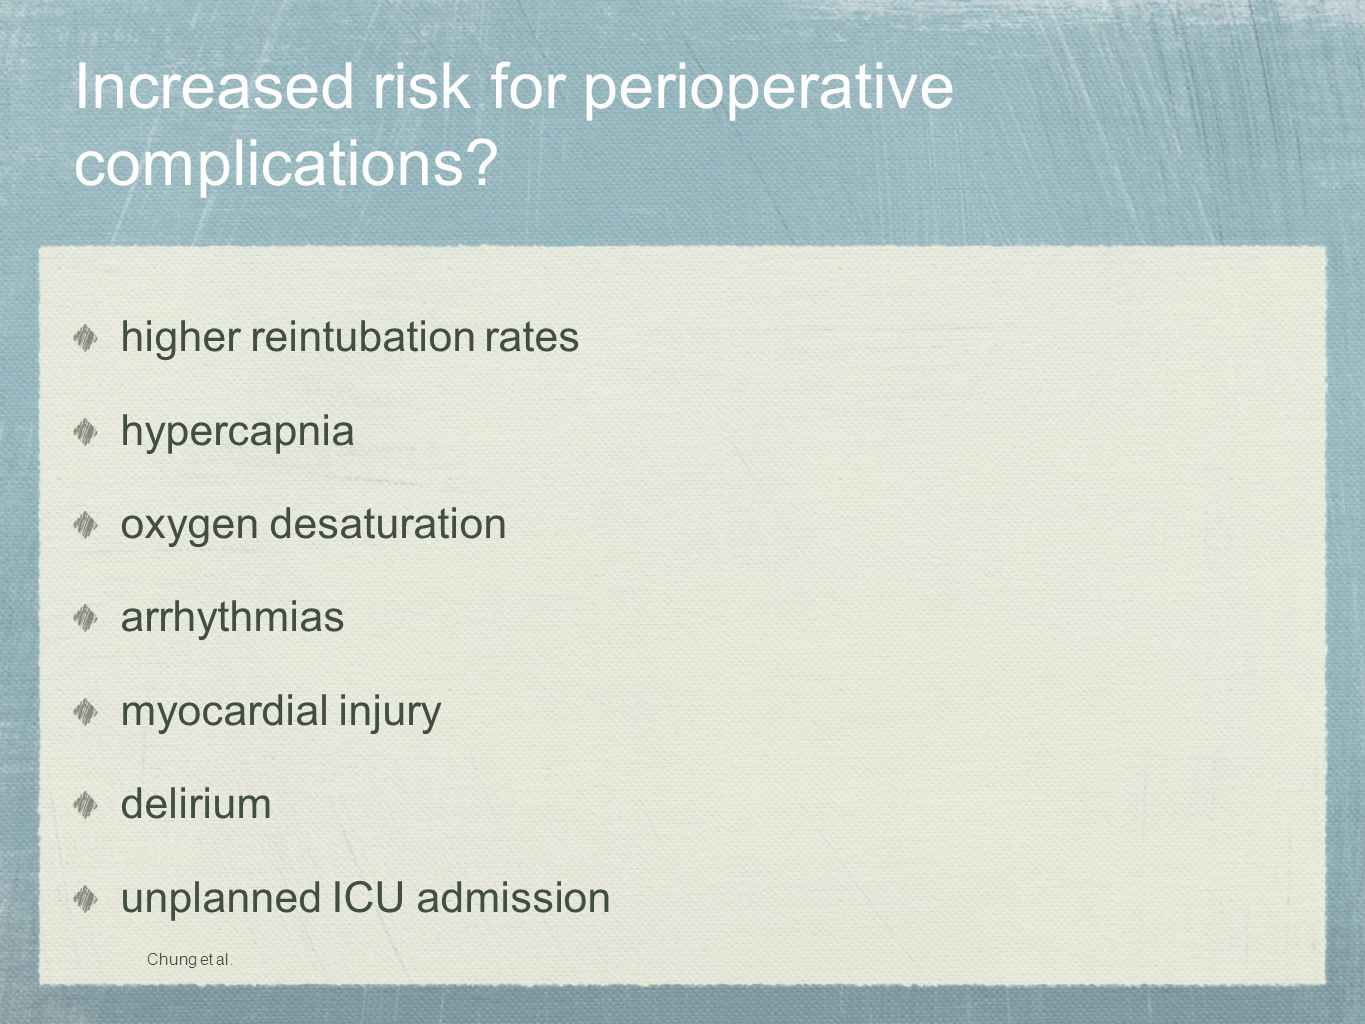 Increased risk for perioperative complications